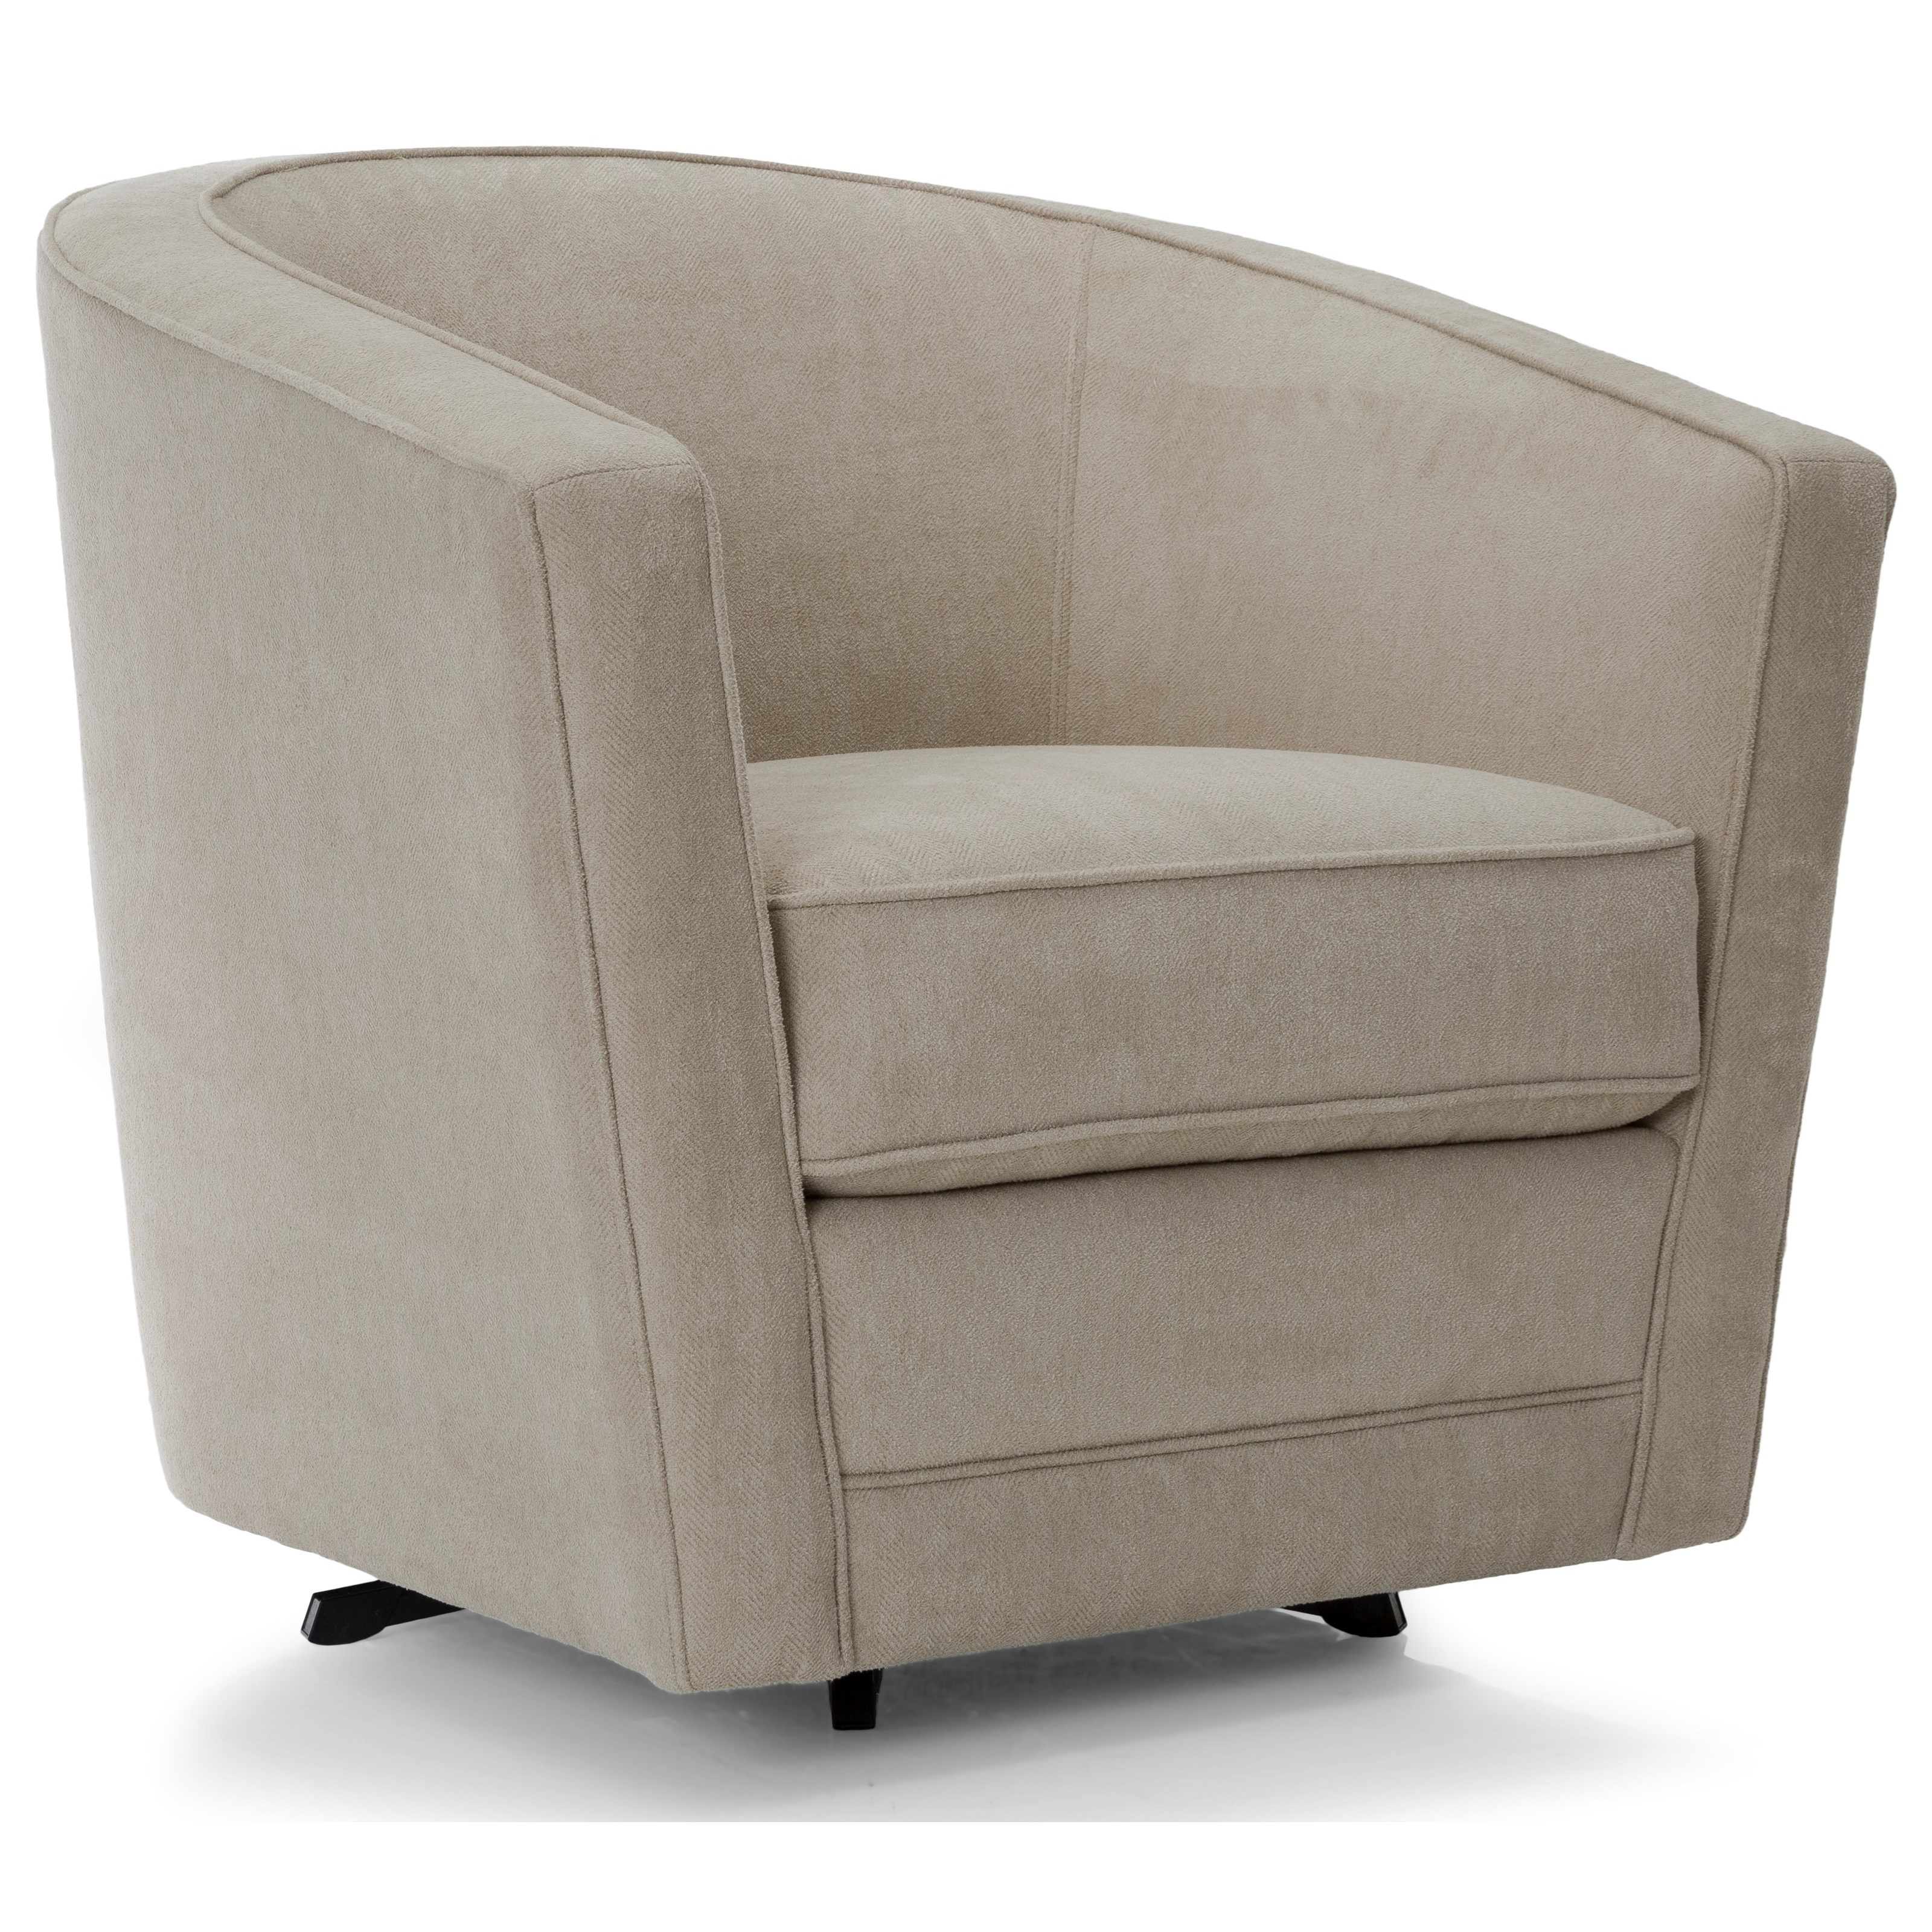 2693 Swivel Chair by Decor-Rest at Reid's Furniture